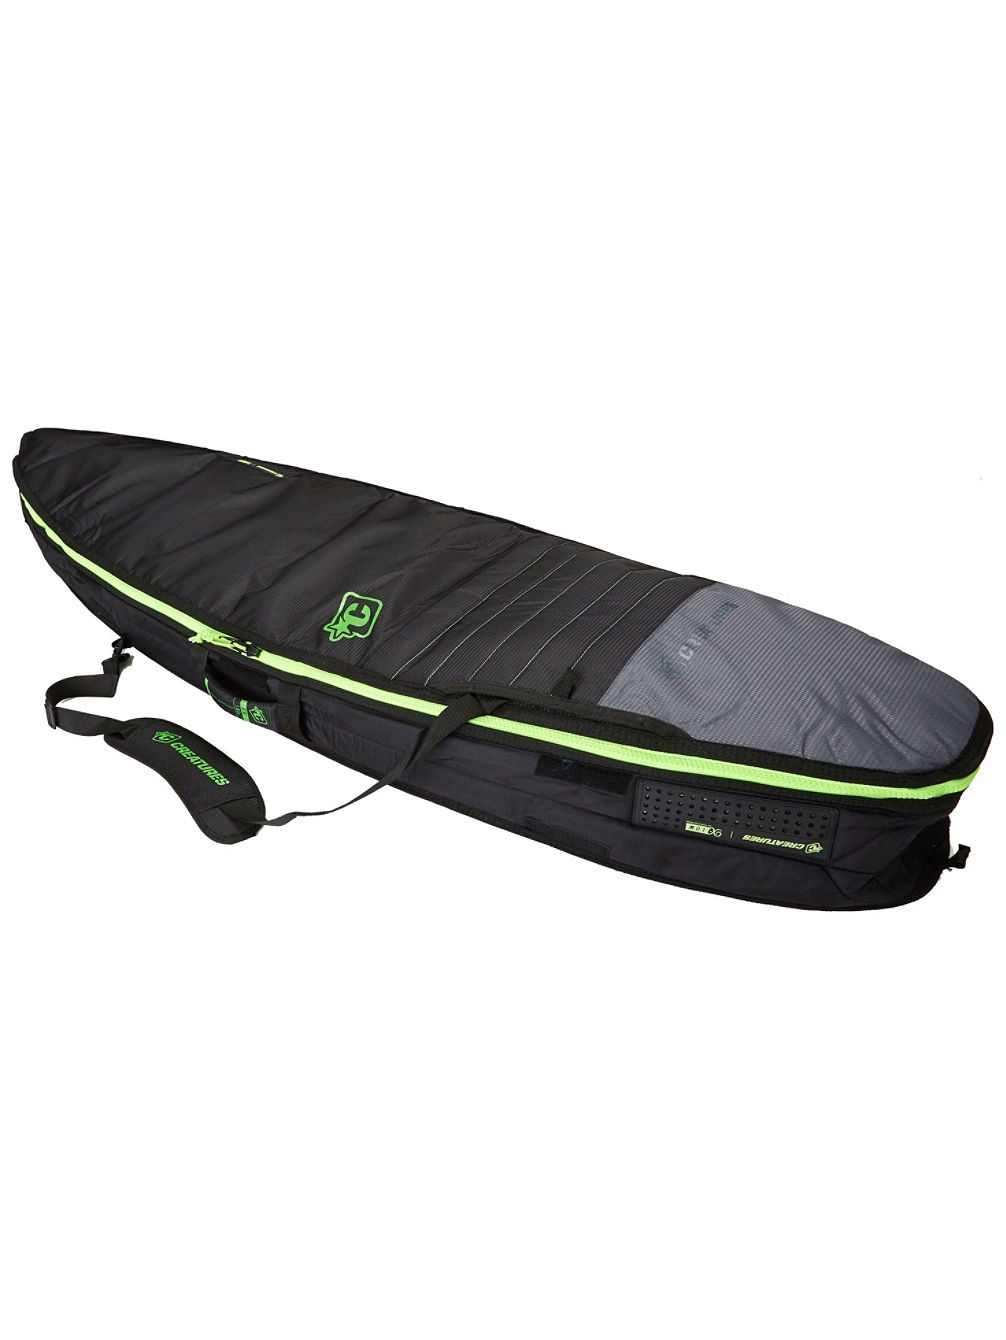 Shortboard Double Cover 6.3